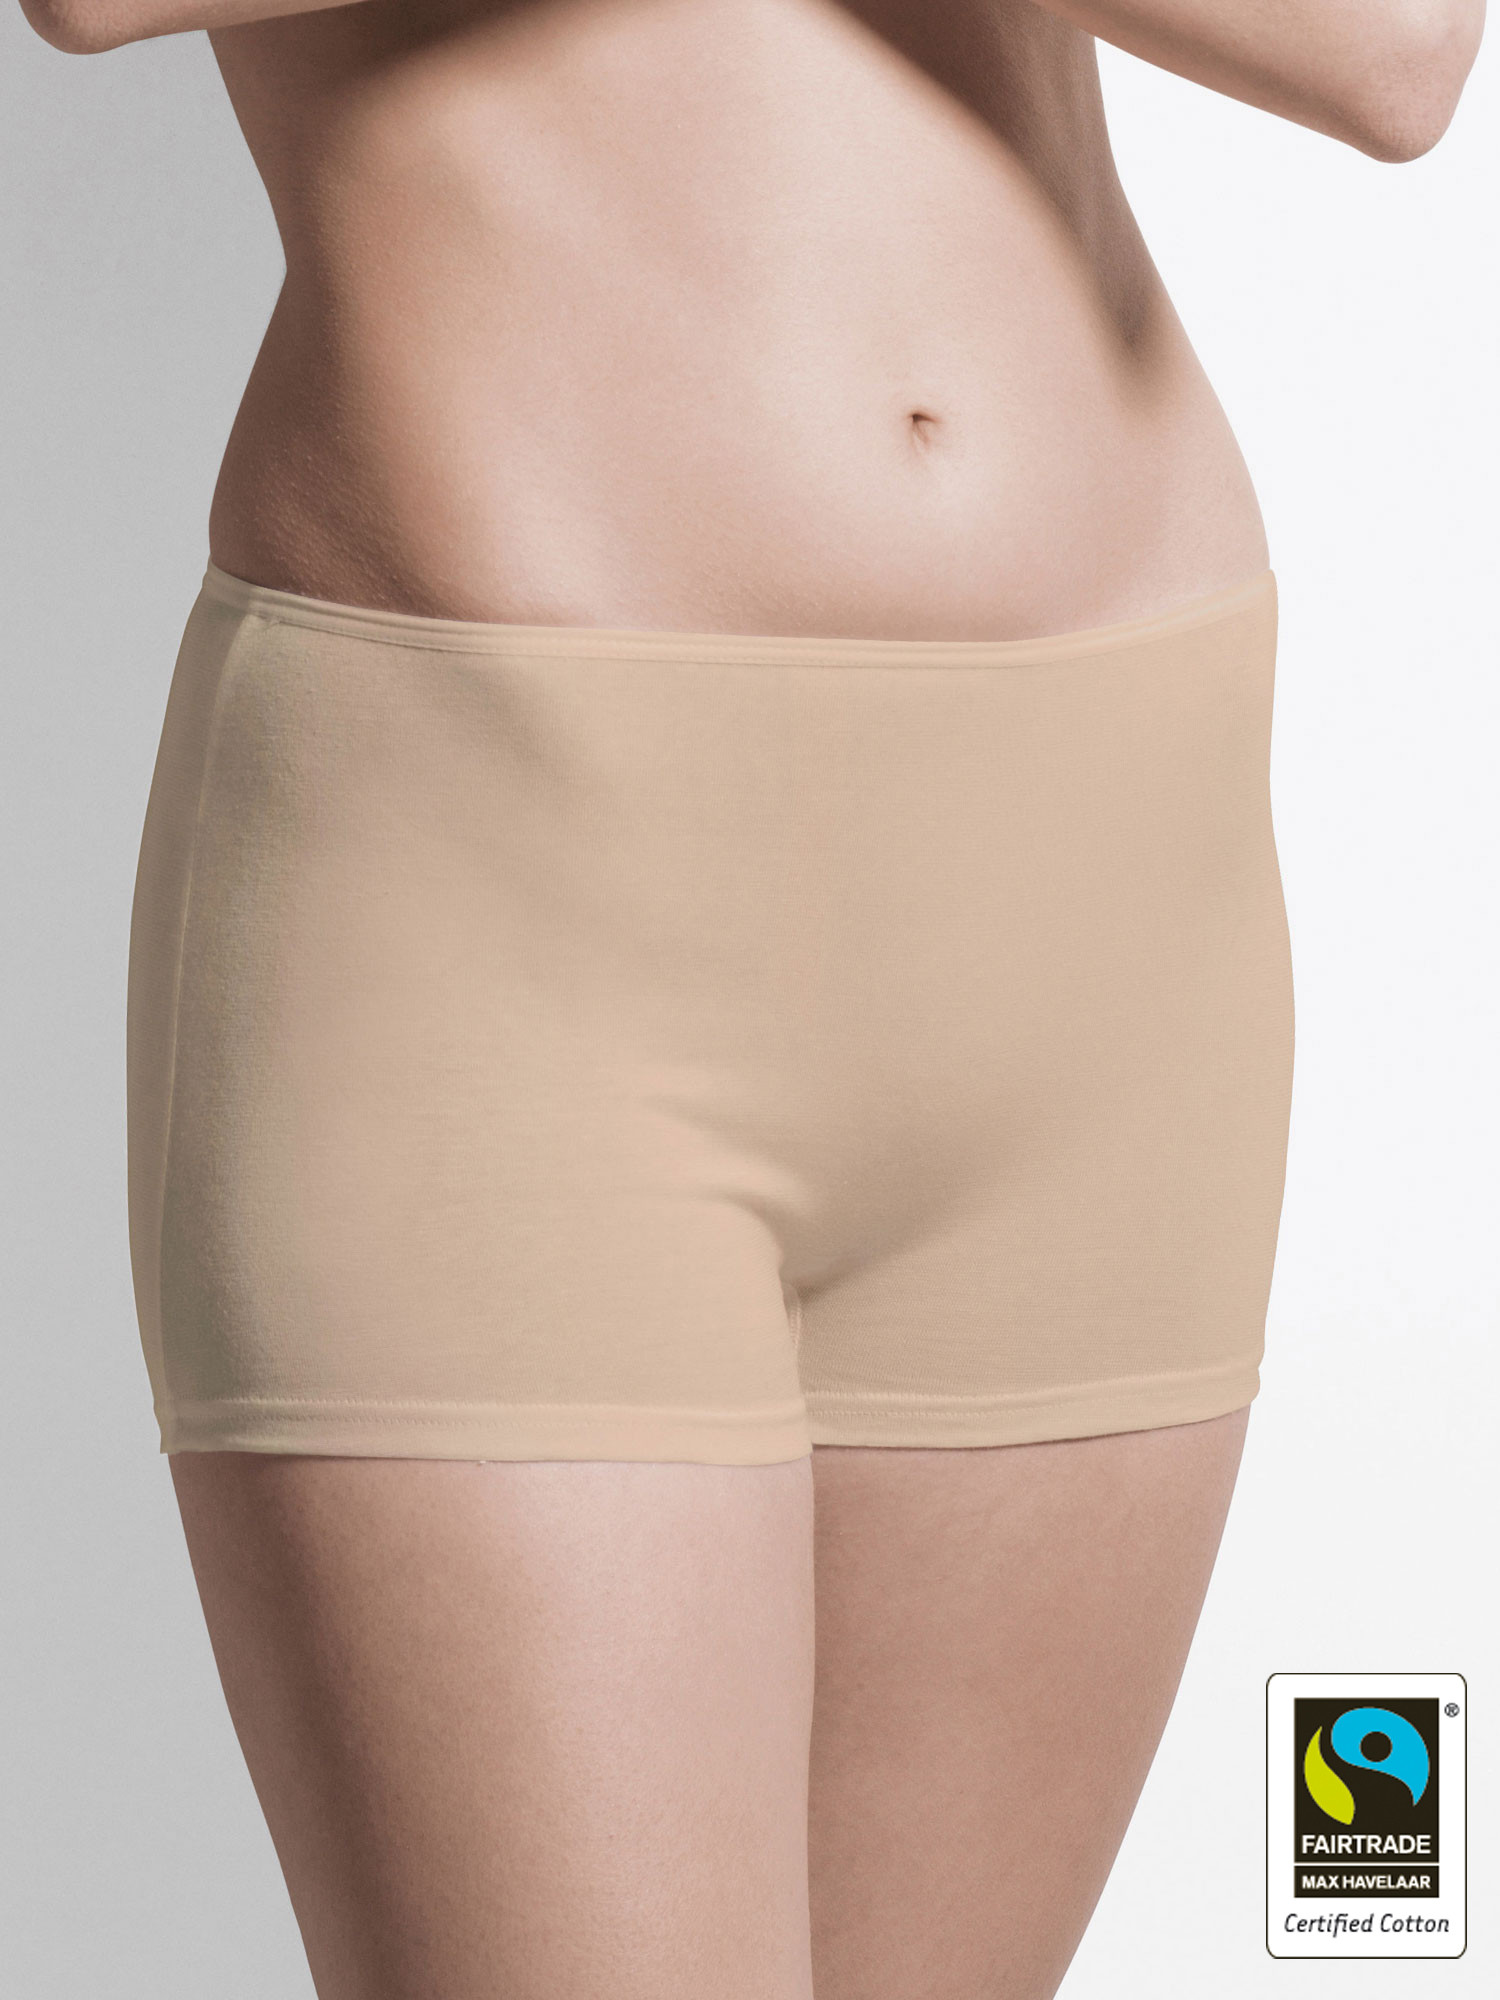 PANTY FAIRTRADE MAX HAVELAAR